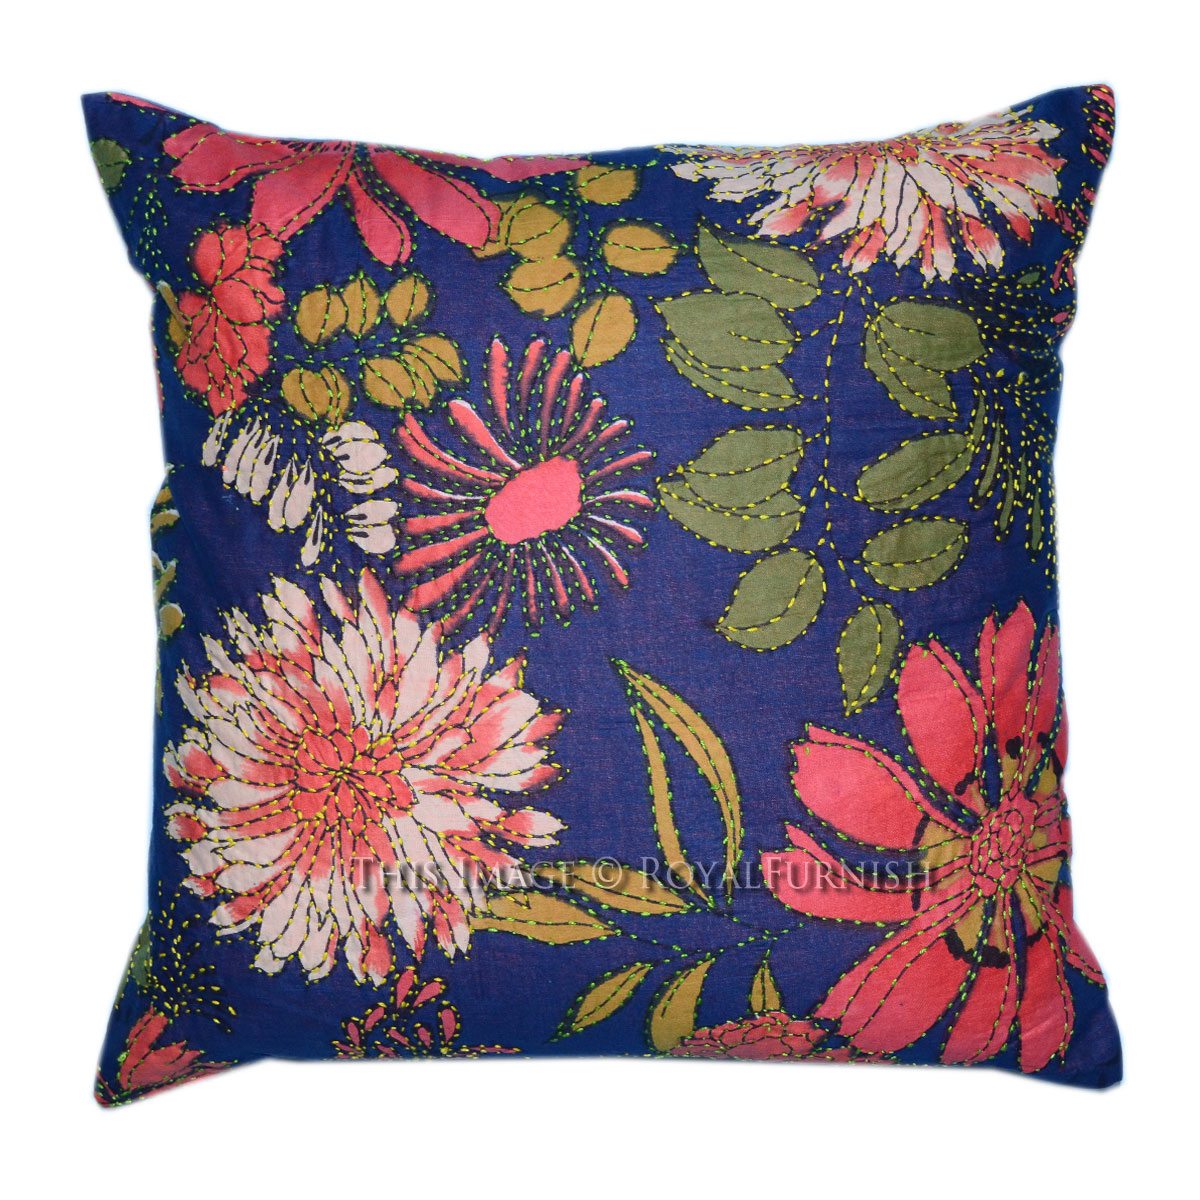 Decorative Indian Kantha Embroidered Cotton Throw Pillow Cover - RoyalFurnish.com